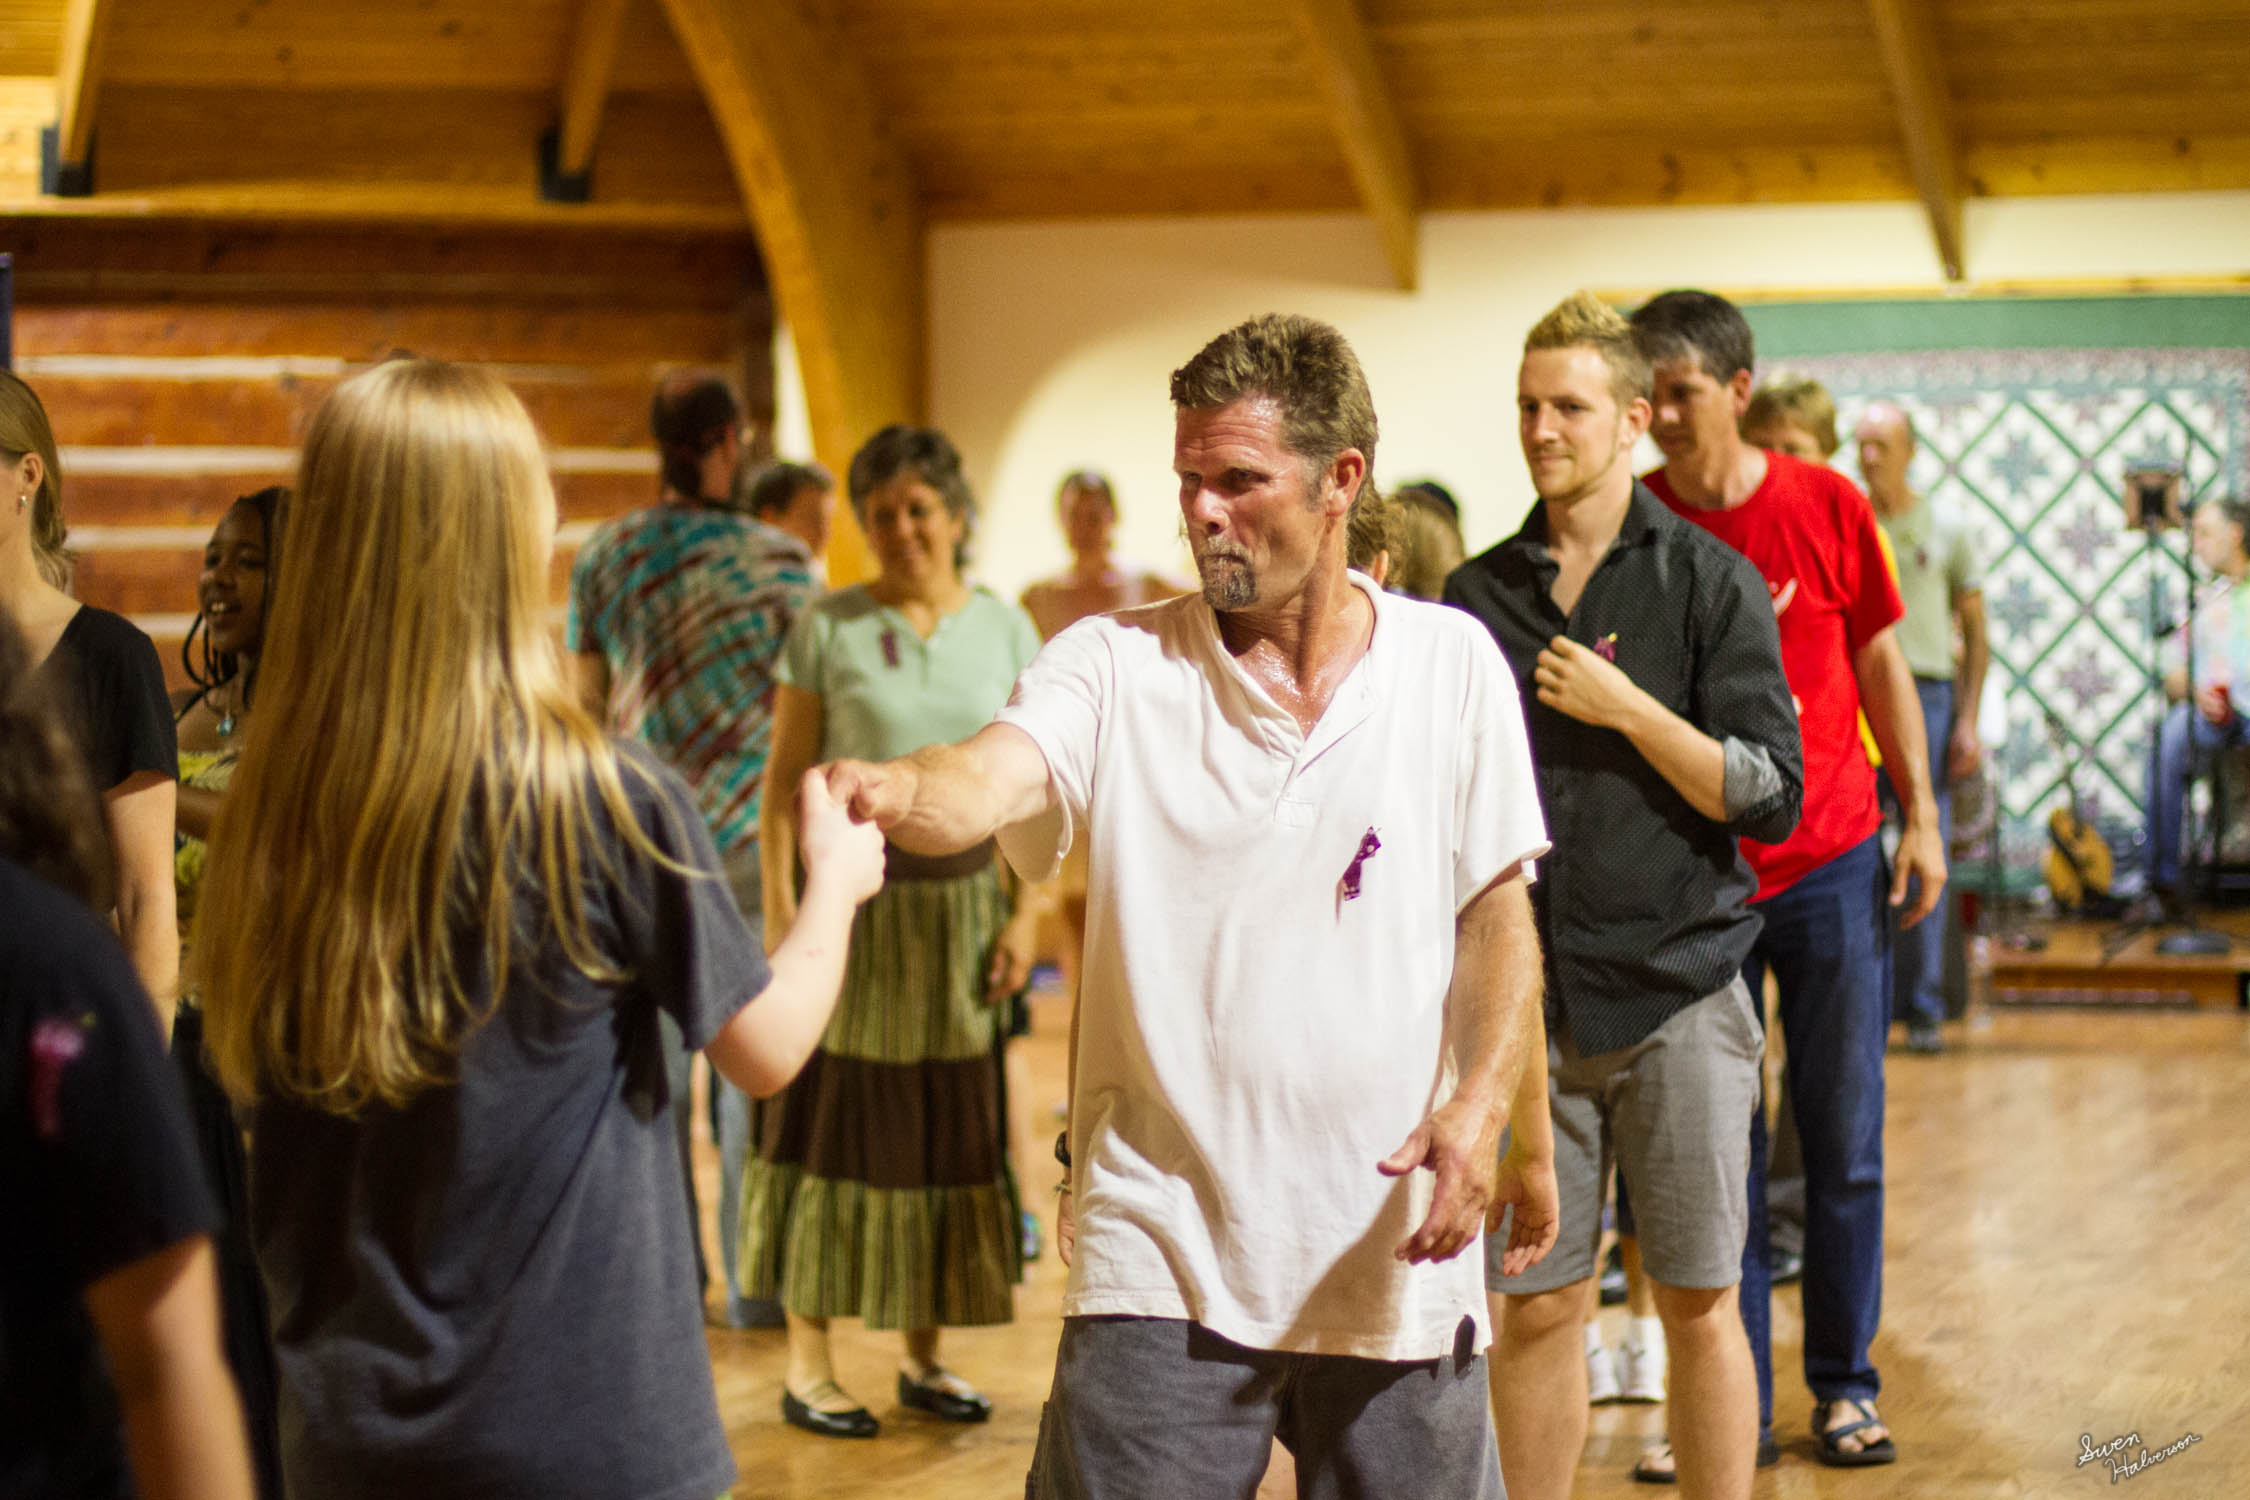 Contra dancing in Berea-019.jpg